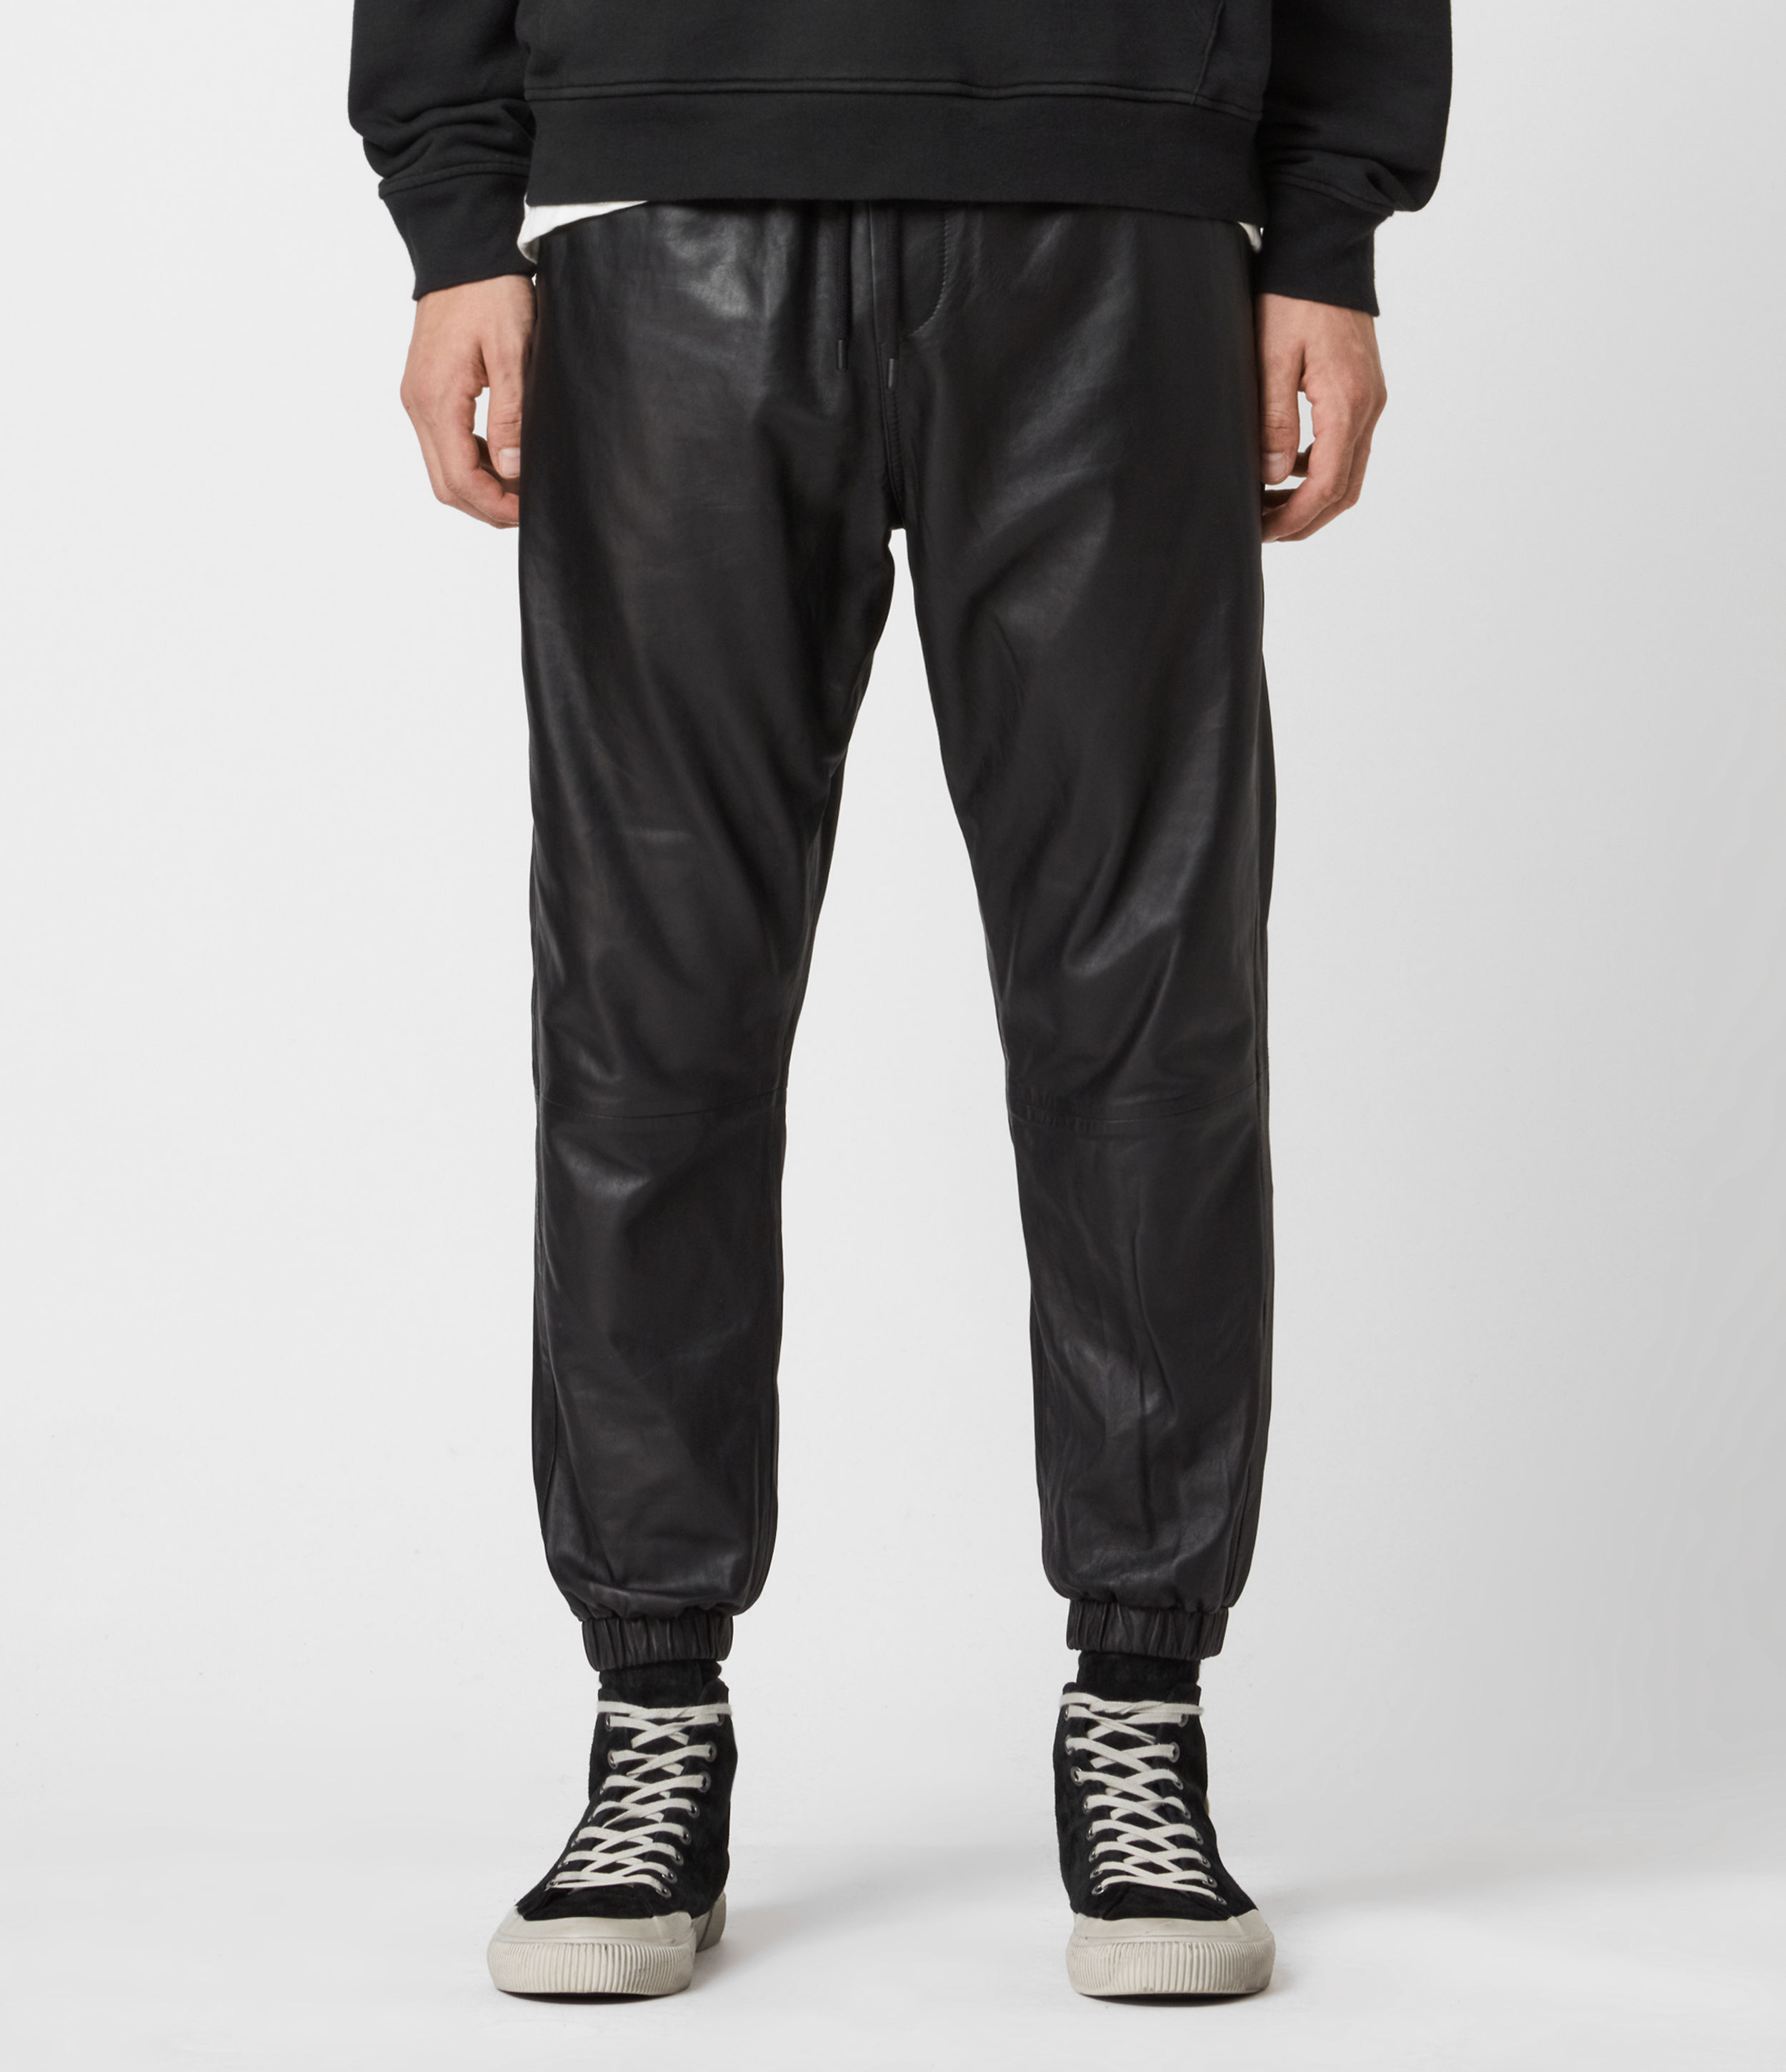 AllSaints Penton Leather Cuffed Trousers